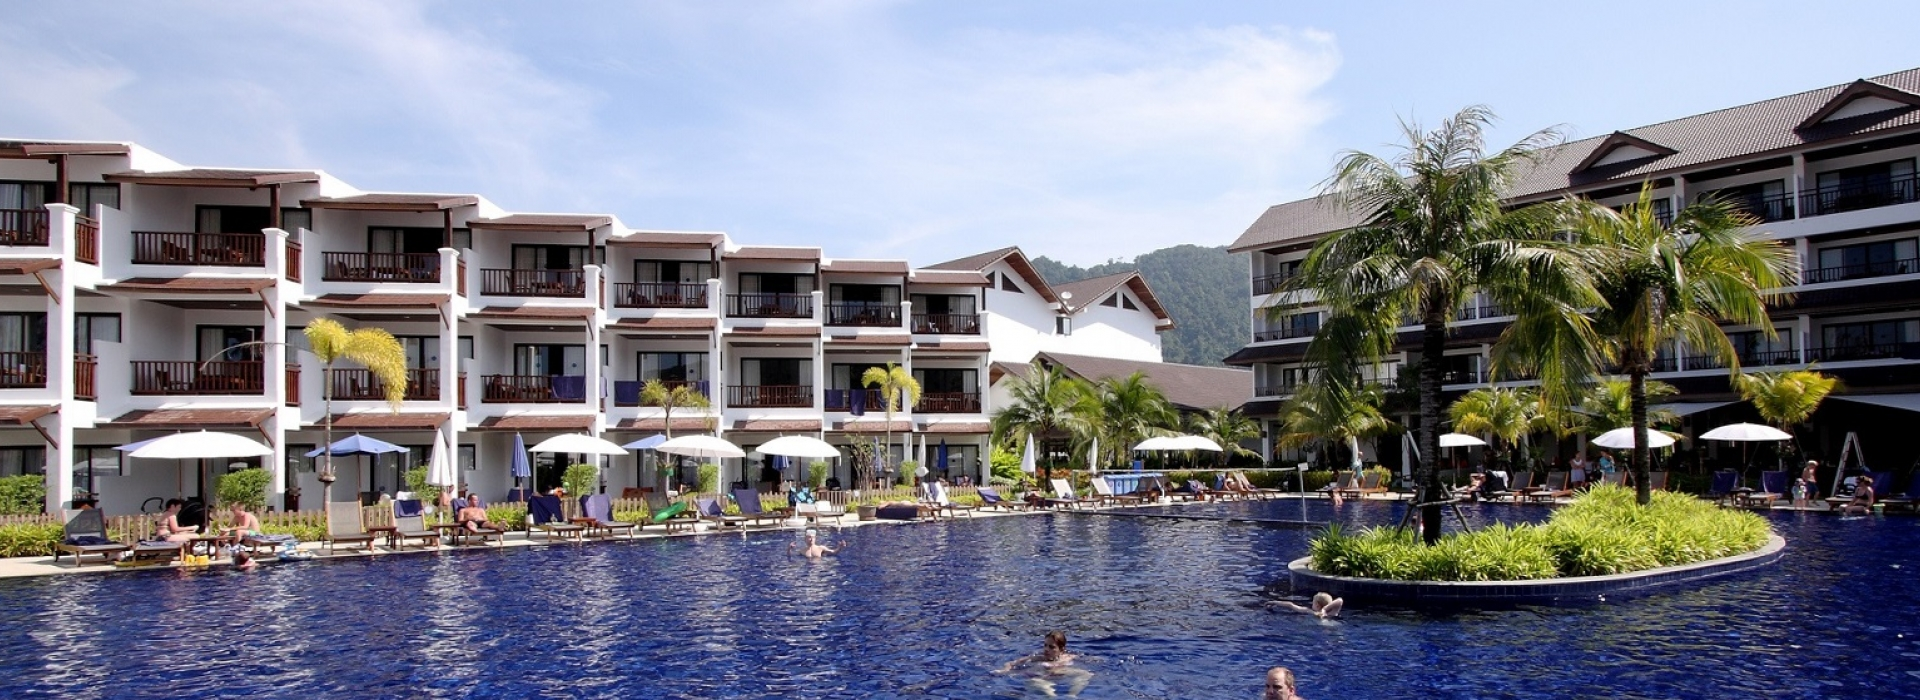 Sunwing Resort Kamala 4*